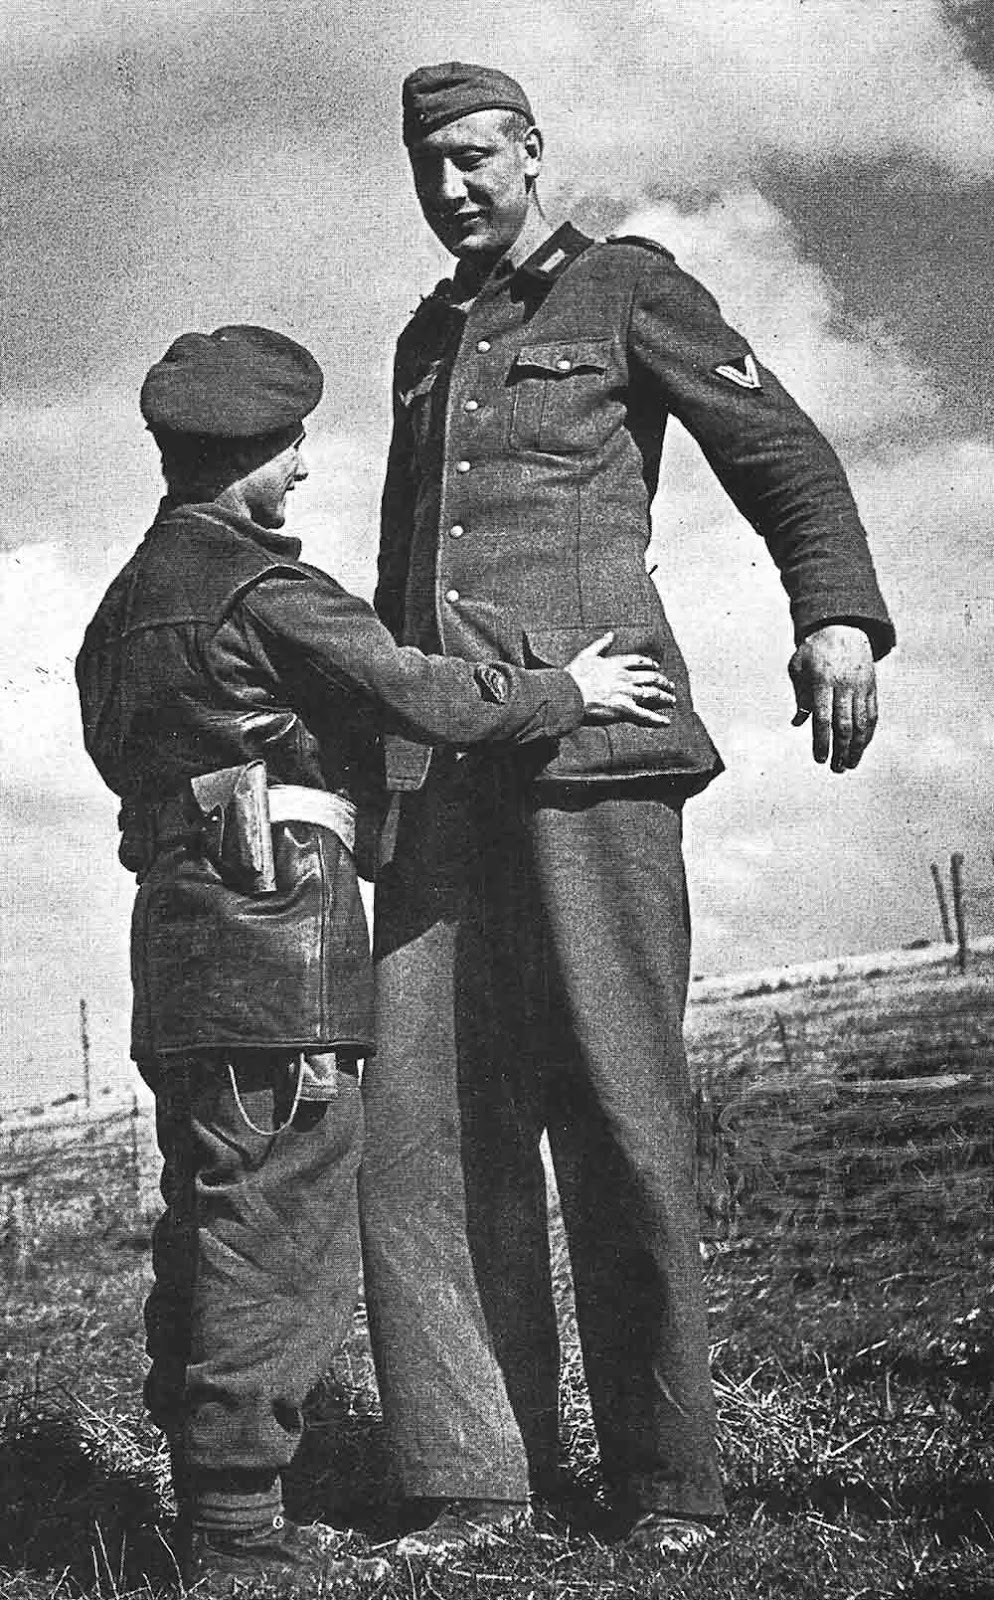 Nacken captured at Calais, France in 1944 when he was 38 years old.